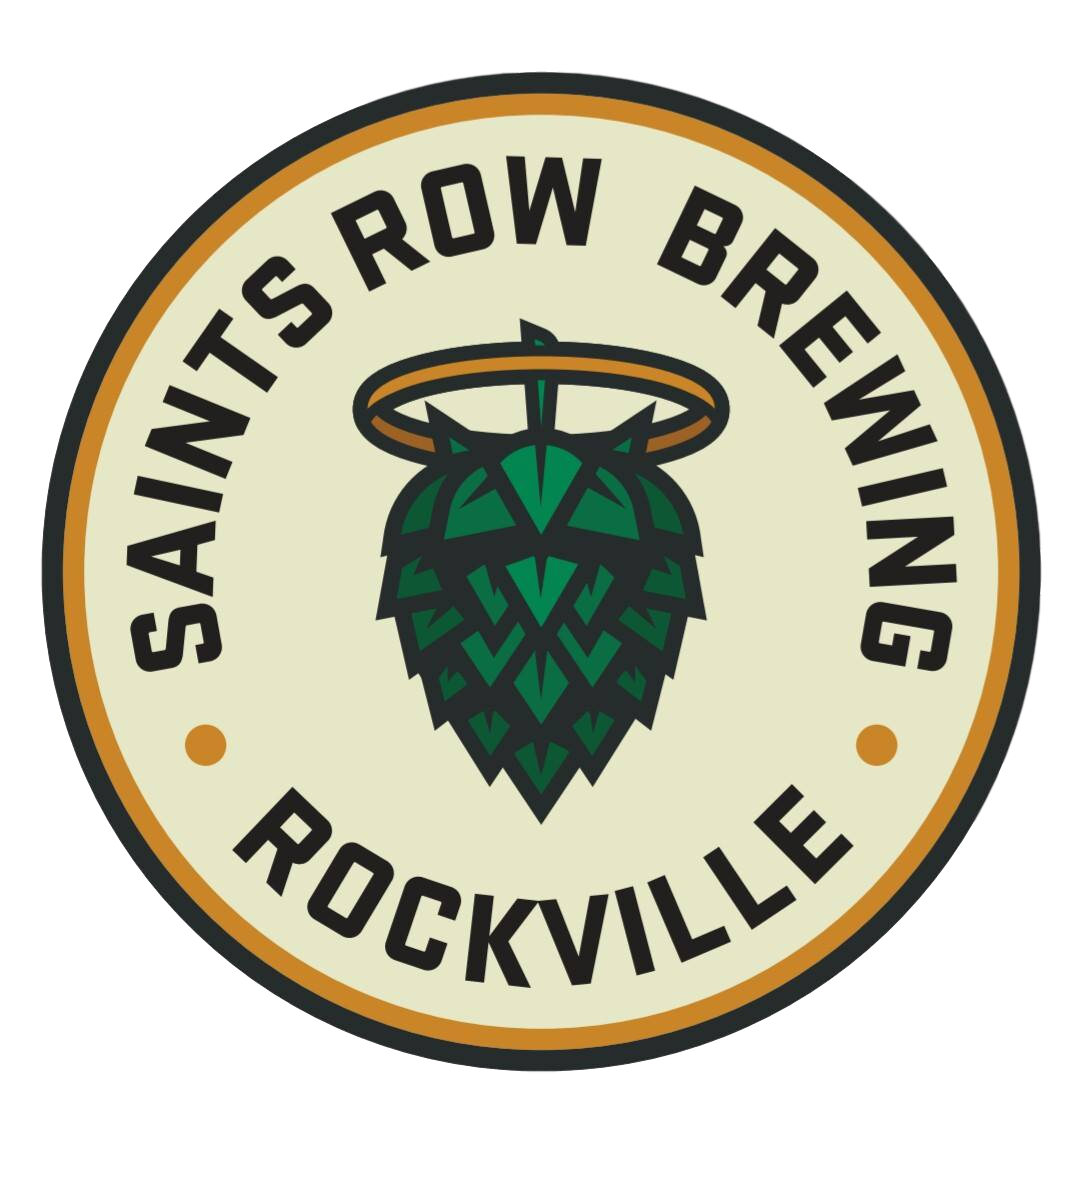 Saints Row Brewing Company